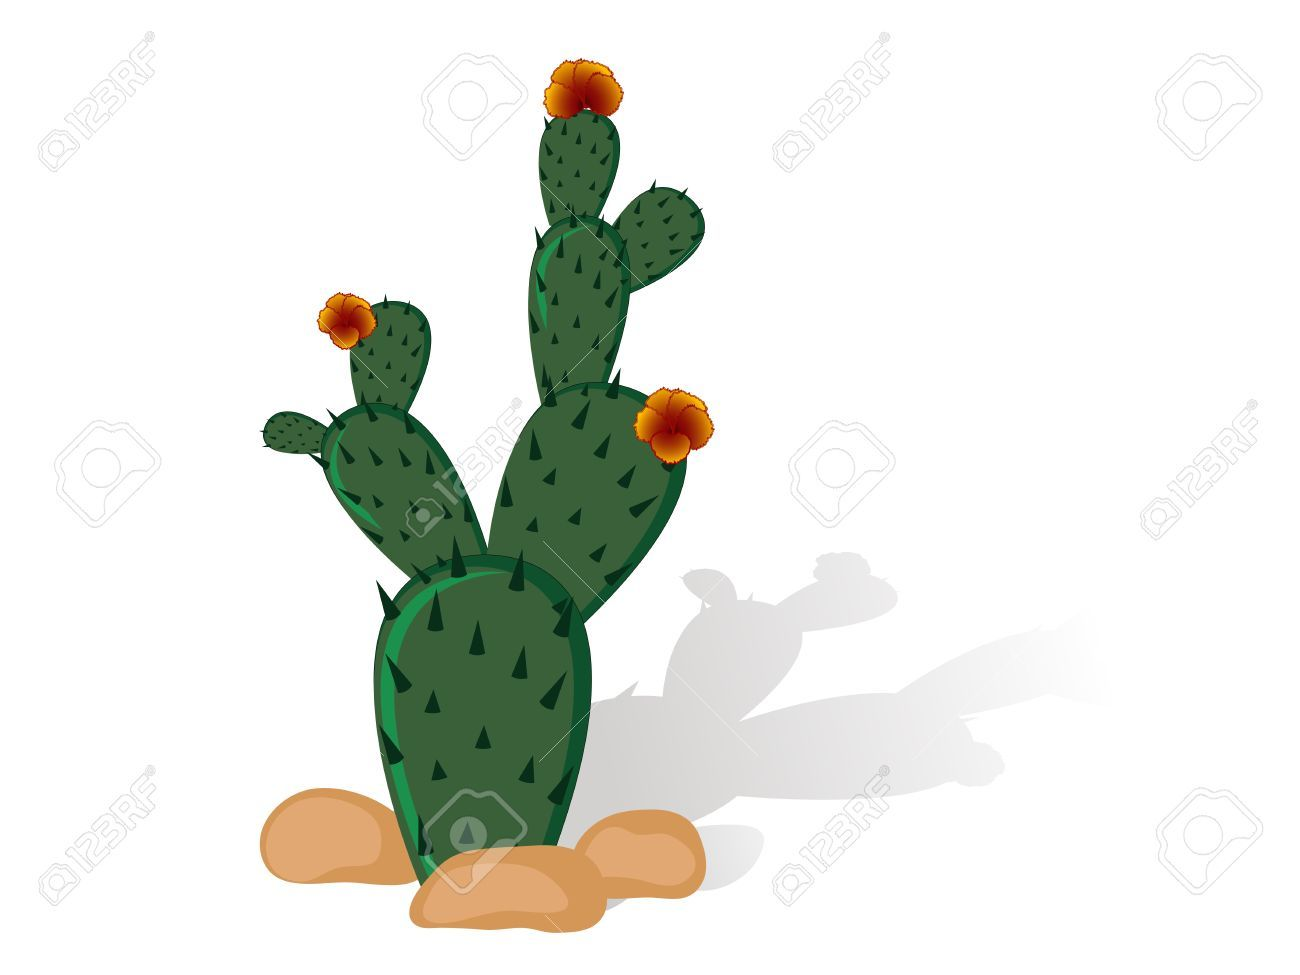 Prickly pear clipart graphic stock Prickly pear cactus clipart 4 » Clipart Portal graphic stock